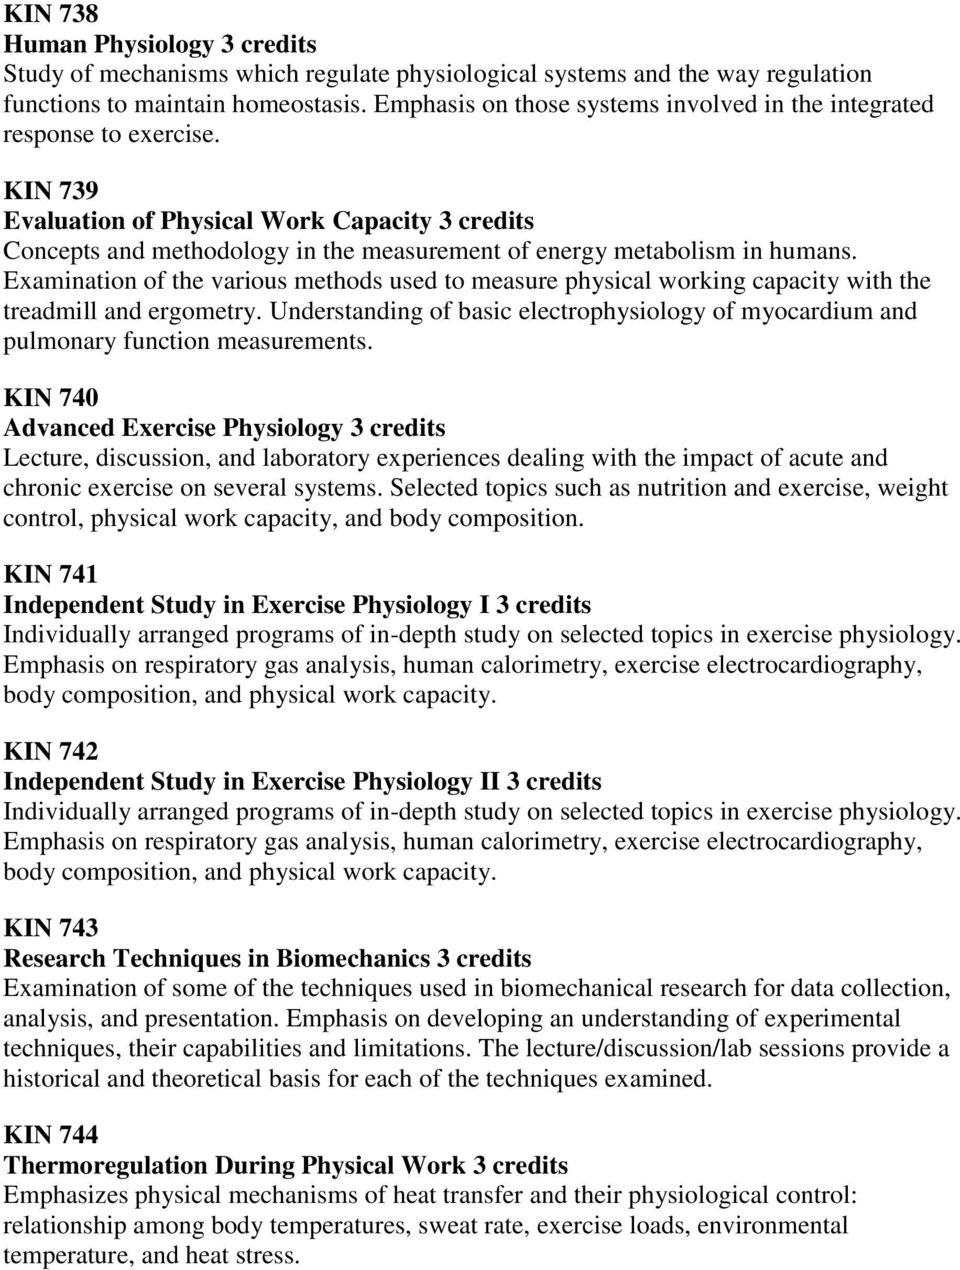 KIN 739 Evaluation of Physical Work Capacity 3 credits Concepts and methodology in the measurement of energy metabolism in humans.